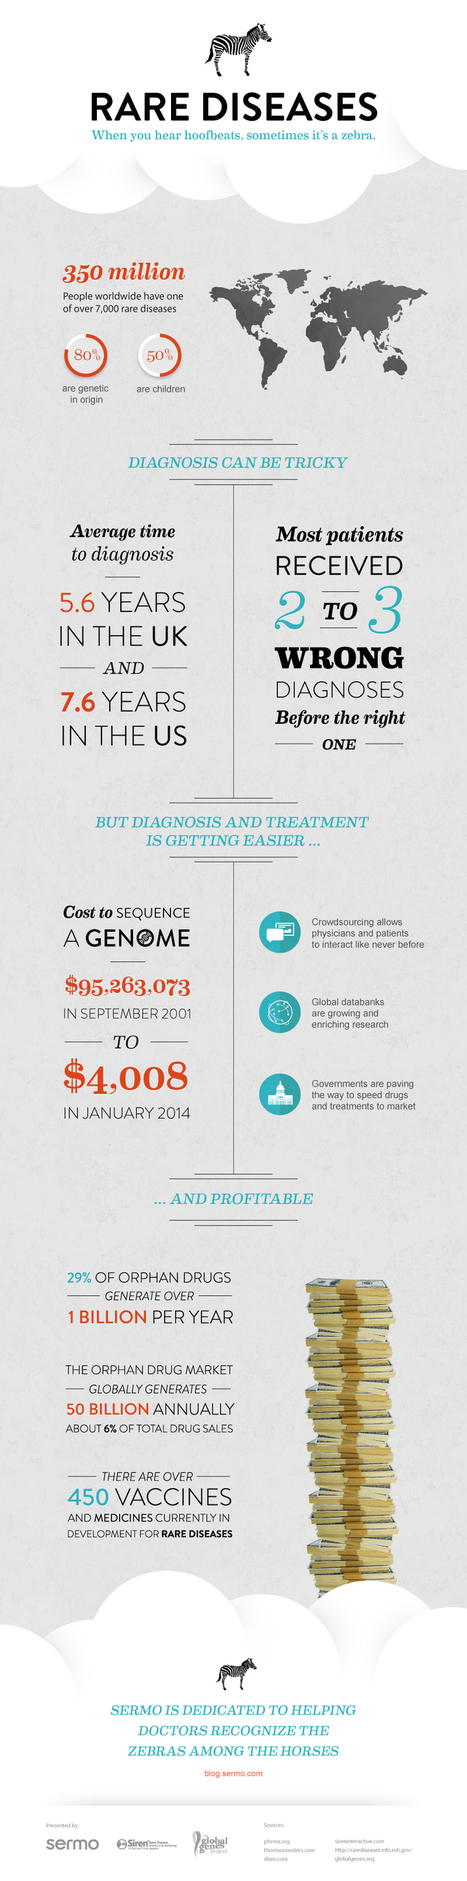 Rare Disease Infographic | Bringing HCPs and education together | Scoop.it